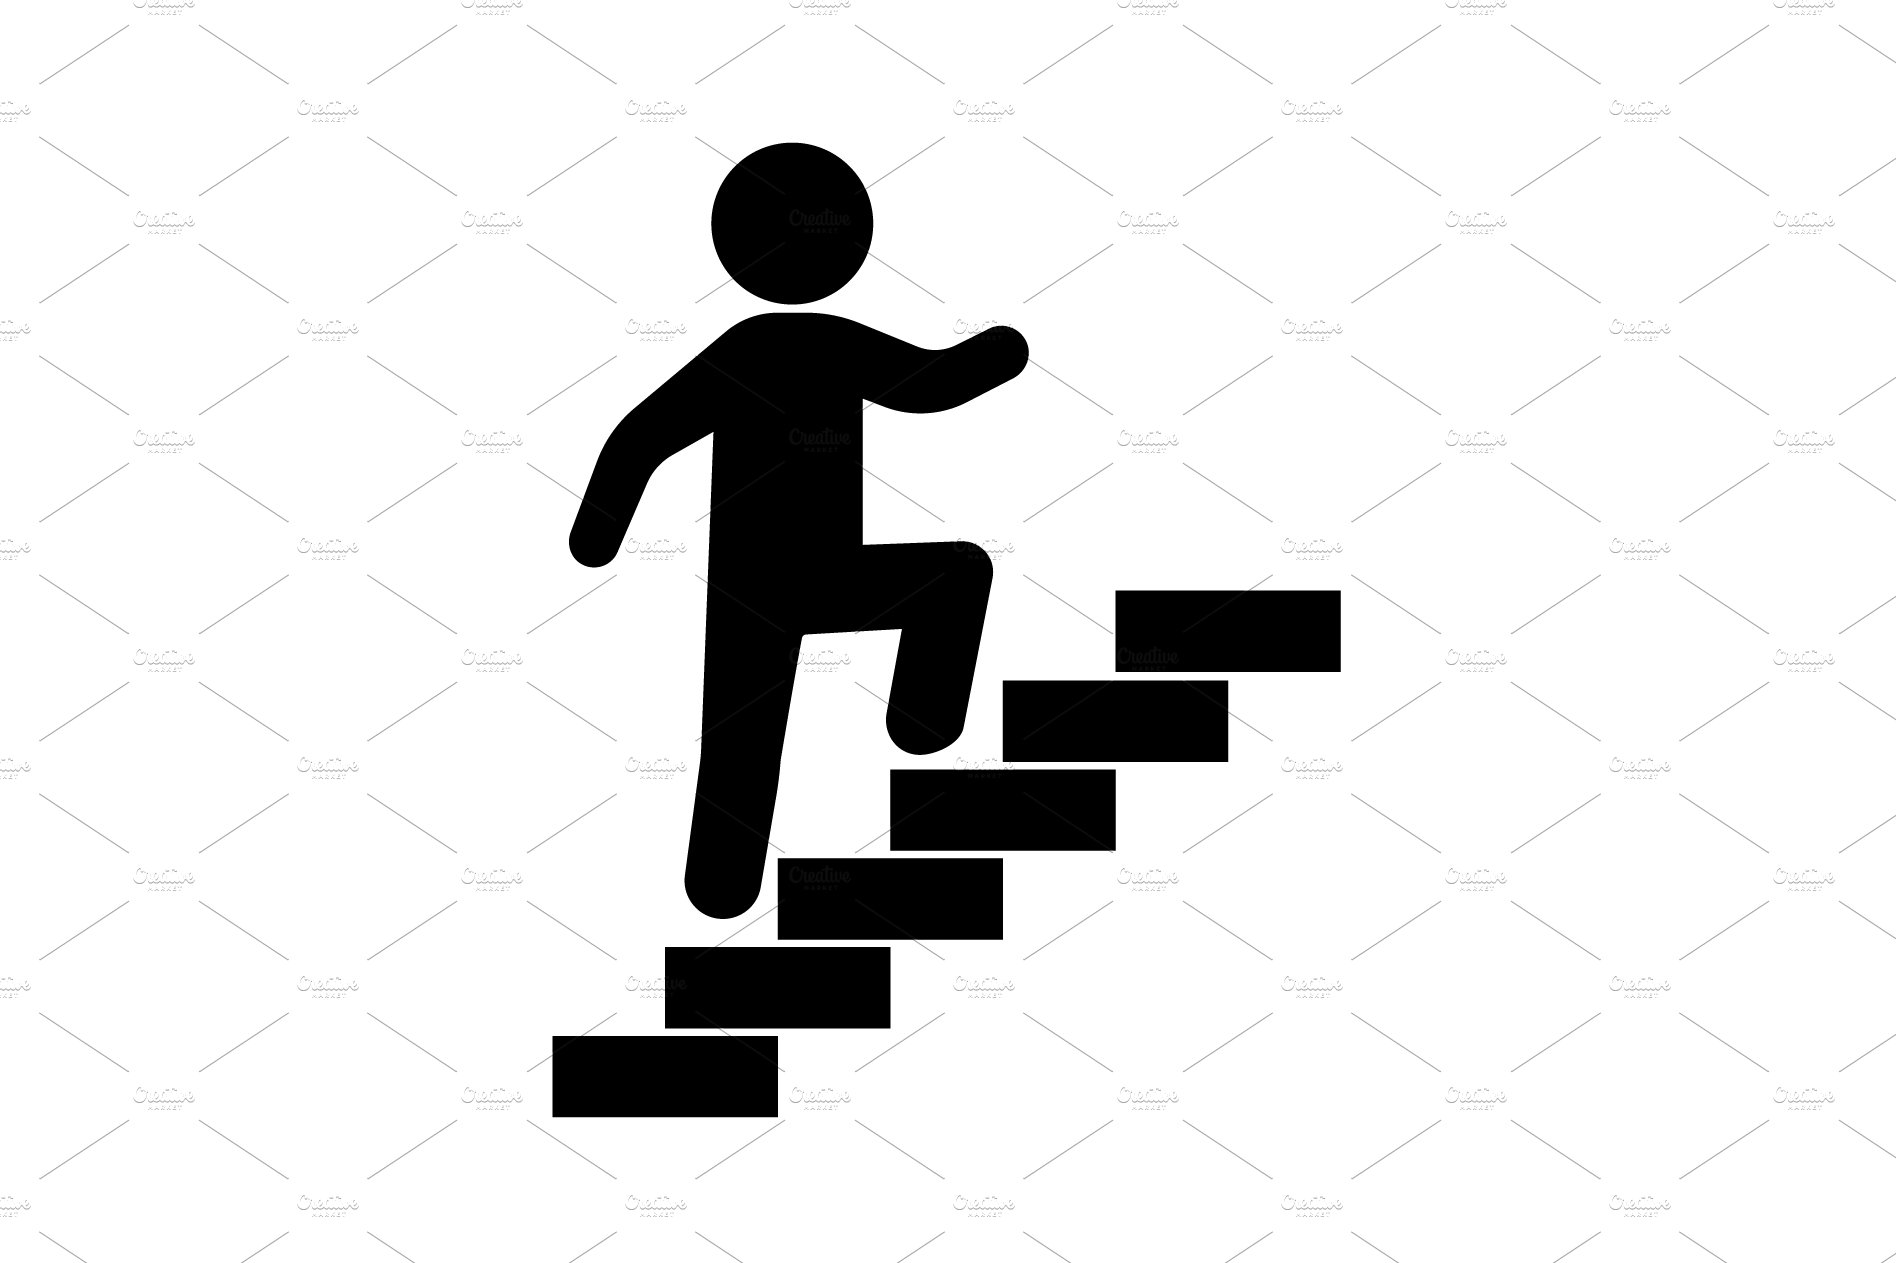 Staircase clipart symbol. Stairs images clip art